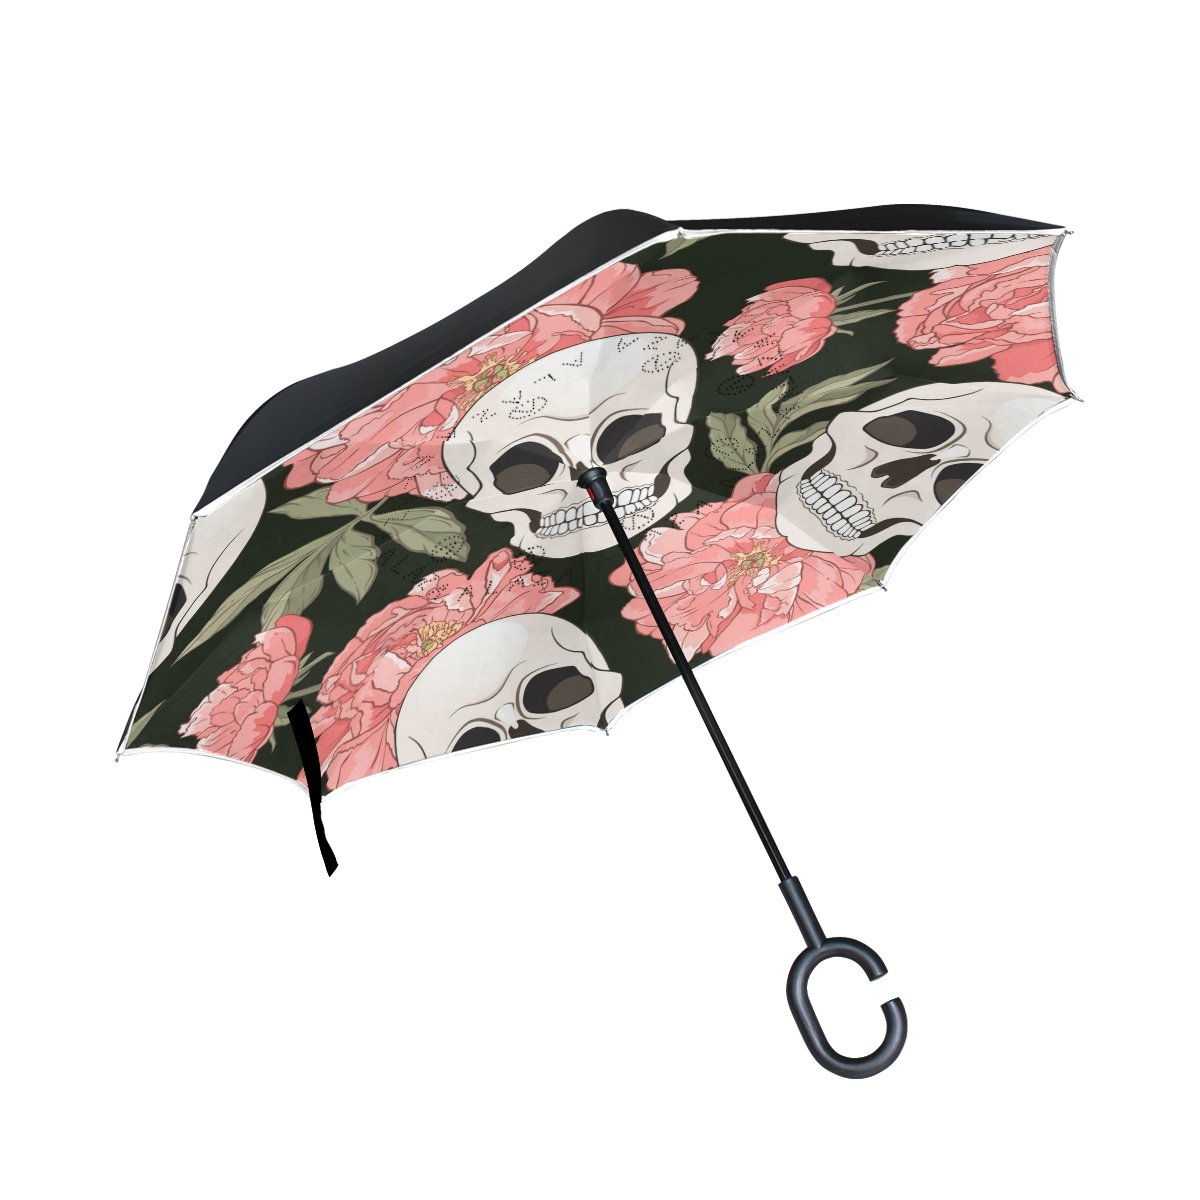 50%OFF La Random Gothic Seamless Pattern With Floral Skulls Inverted Umbrella Double Layer Windproof UV Protection Compact Car Reverse Umbrella